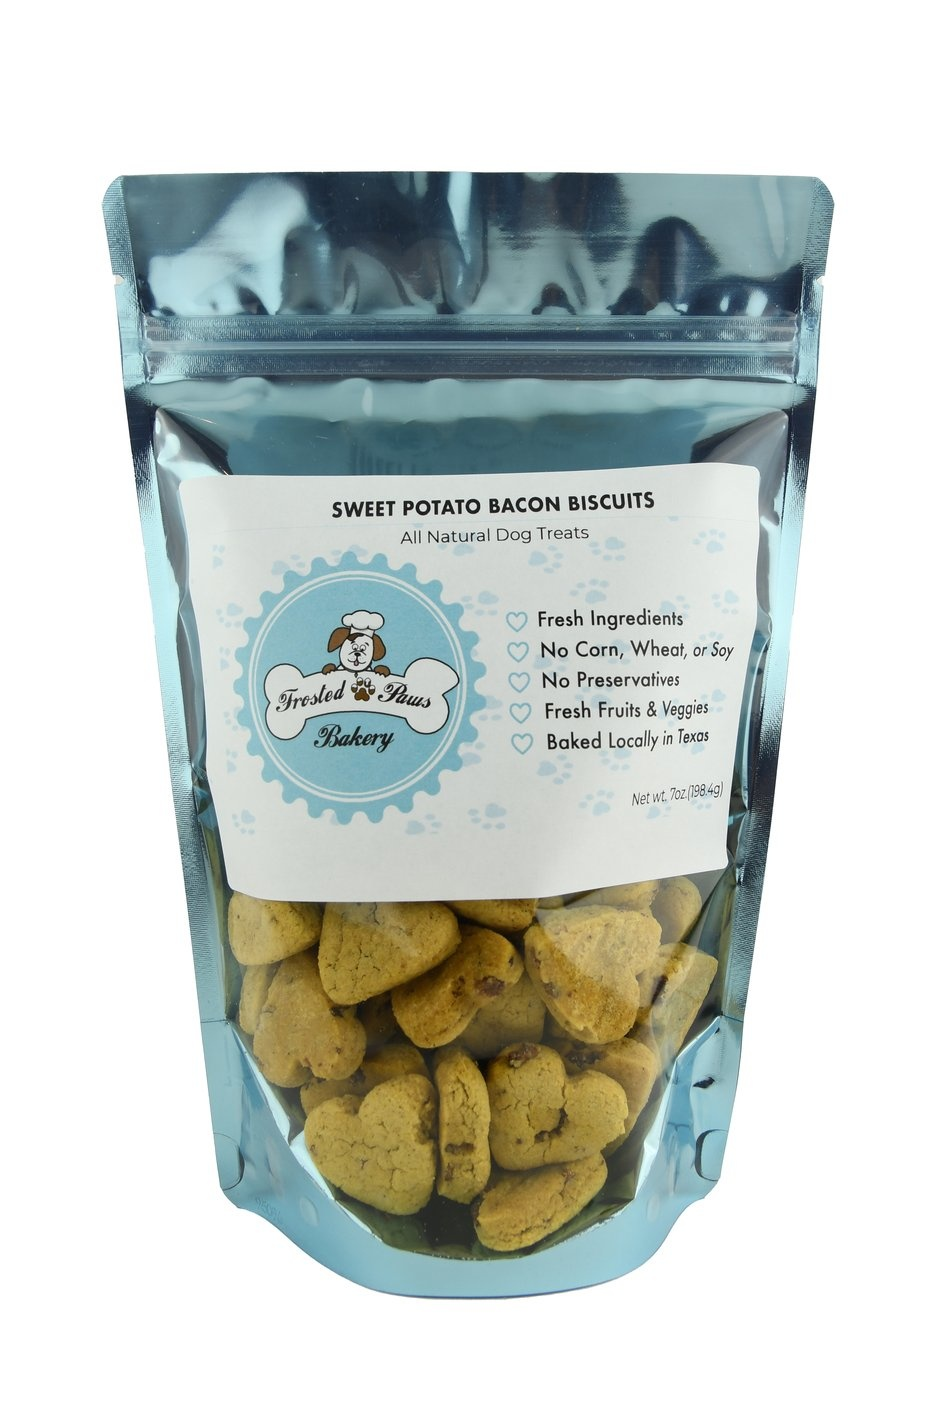 Frosted Paws Frosted Paws Sweet Potato Bacon Biscuits 7 oz